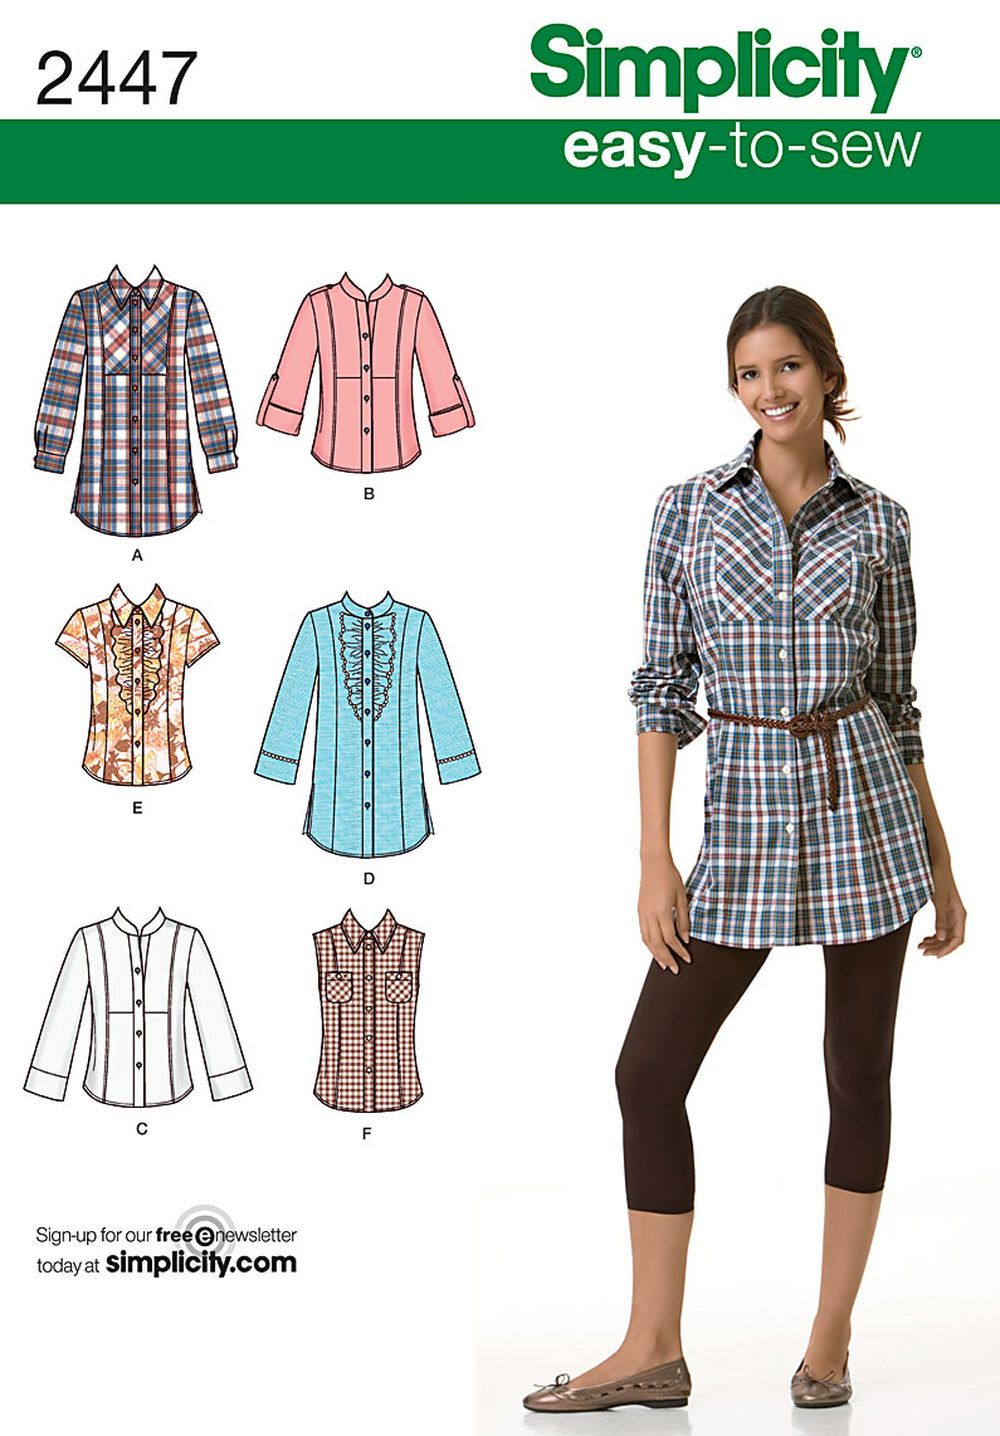 """easy to sew collection.  misses' shirt sewing pattern in two lengths with front   collar and sleeve variations.<br/><br/><img src=""""skins/skin_1/images/icon-printer.gif"""" alt=""""printable pattern""""   /> <a href=""""#"""" onclick=""""toggle_visibility('foo');"""">printable pattern terms of sale</a><div id=""""foo""""   style=""""display:none;"""">digital patterns are tiled and labeled so you can print and assemble in the comfort of your home. plus,   digital patterns incur no shipping costs! upon…"""